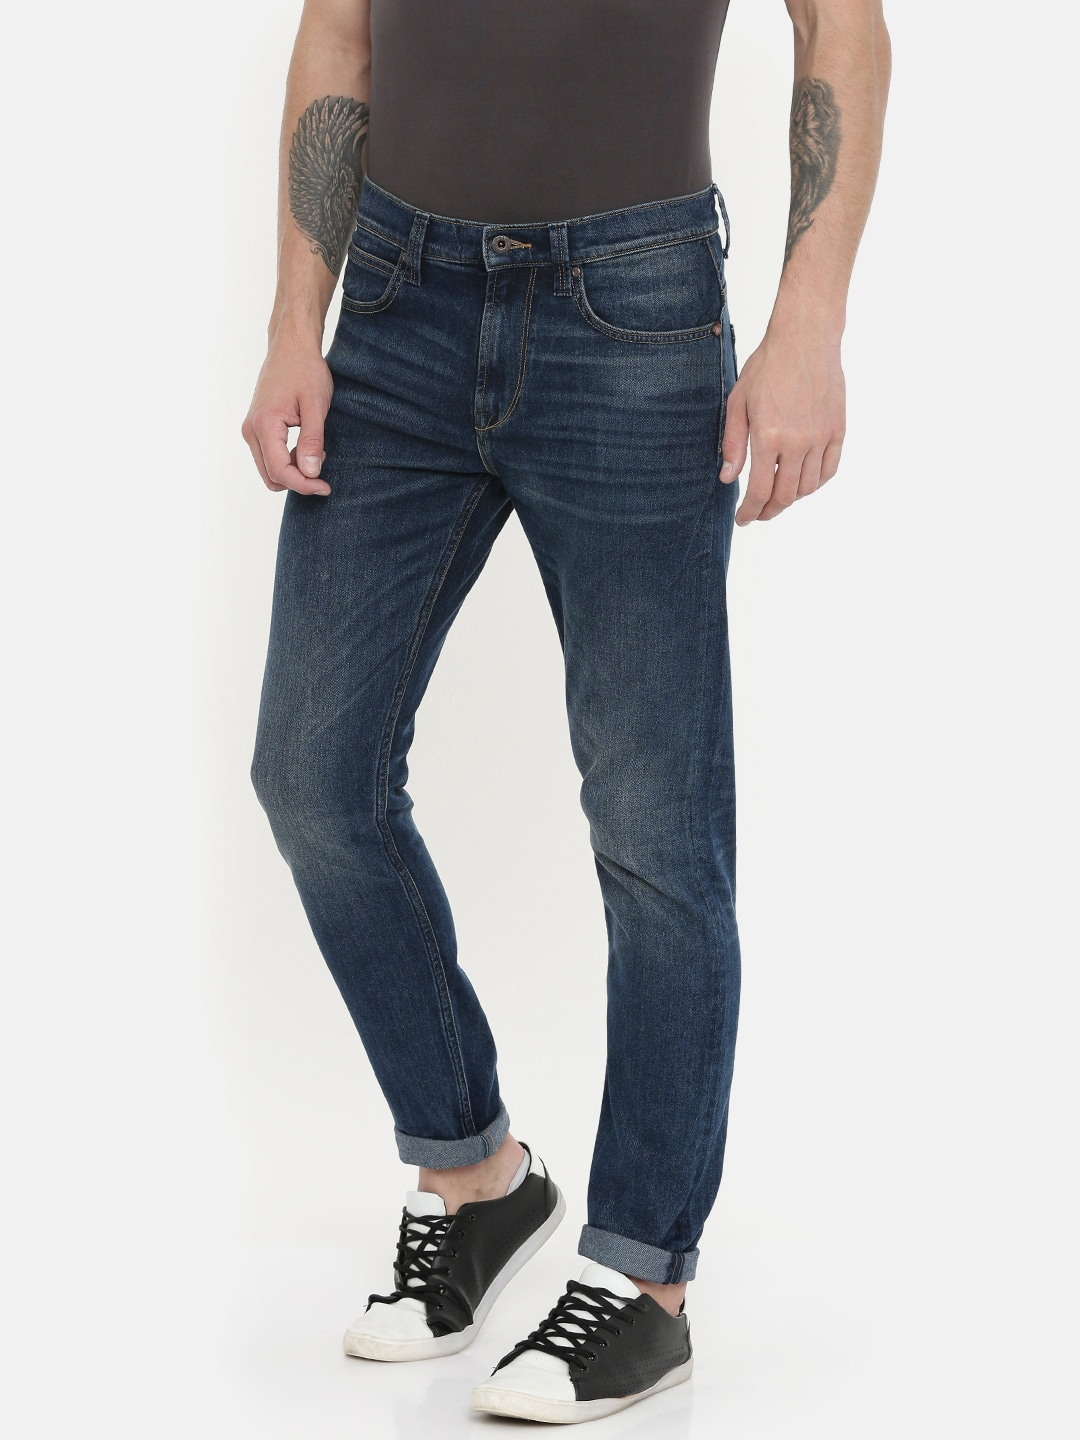 Lee Jeans For Men